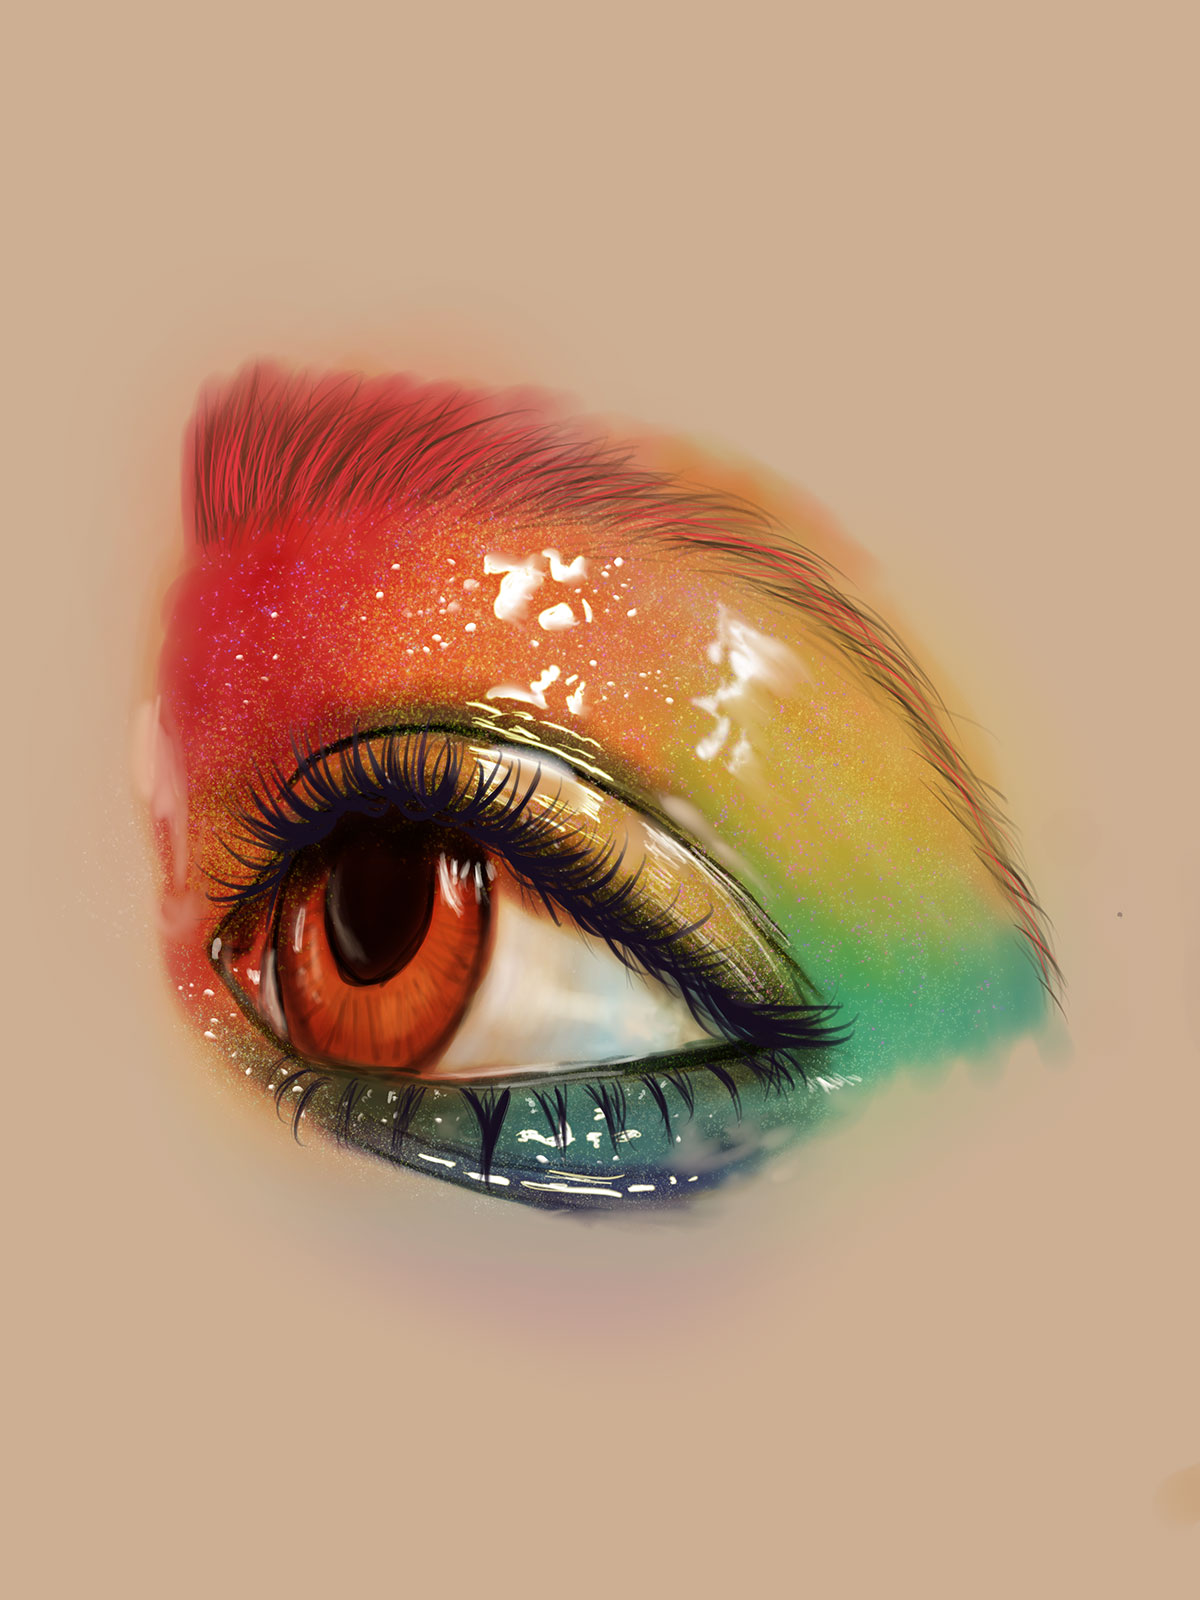 digital painting of a closeup of an eye with rainbow makeup